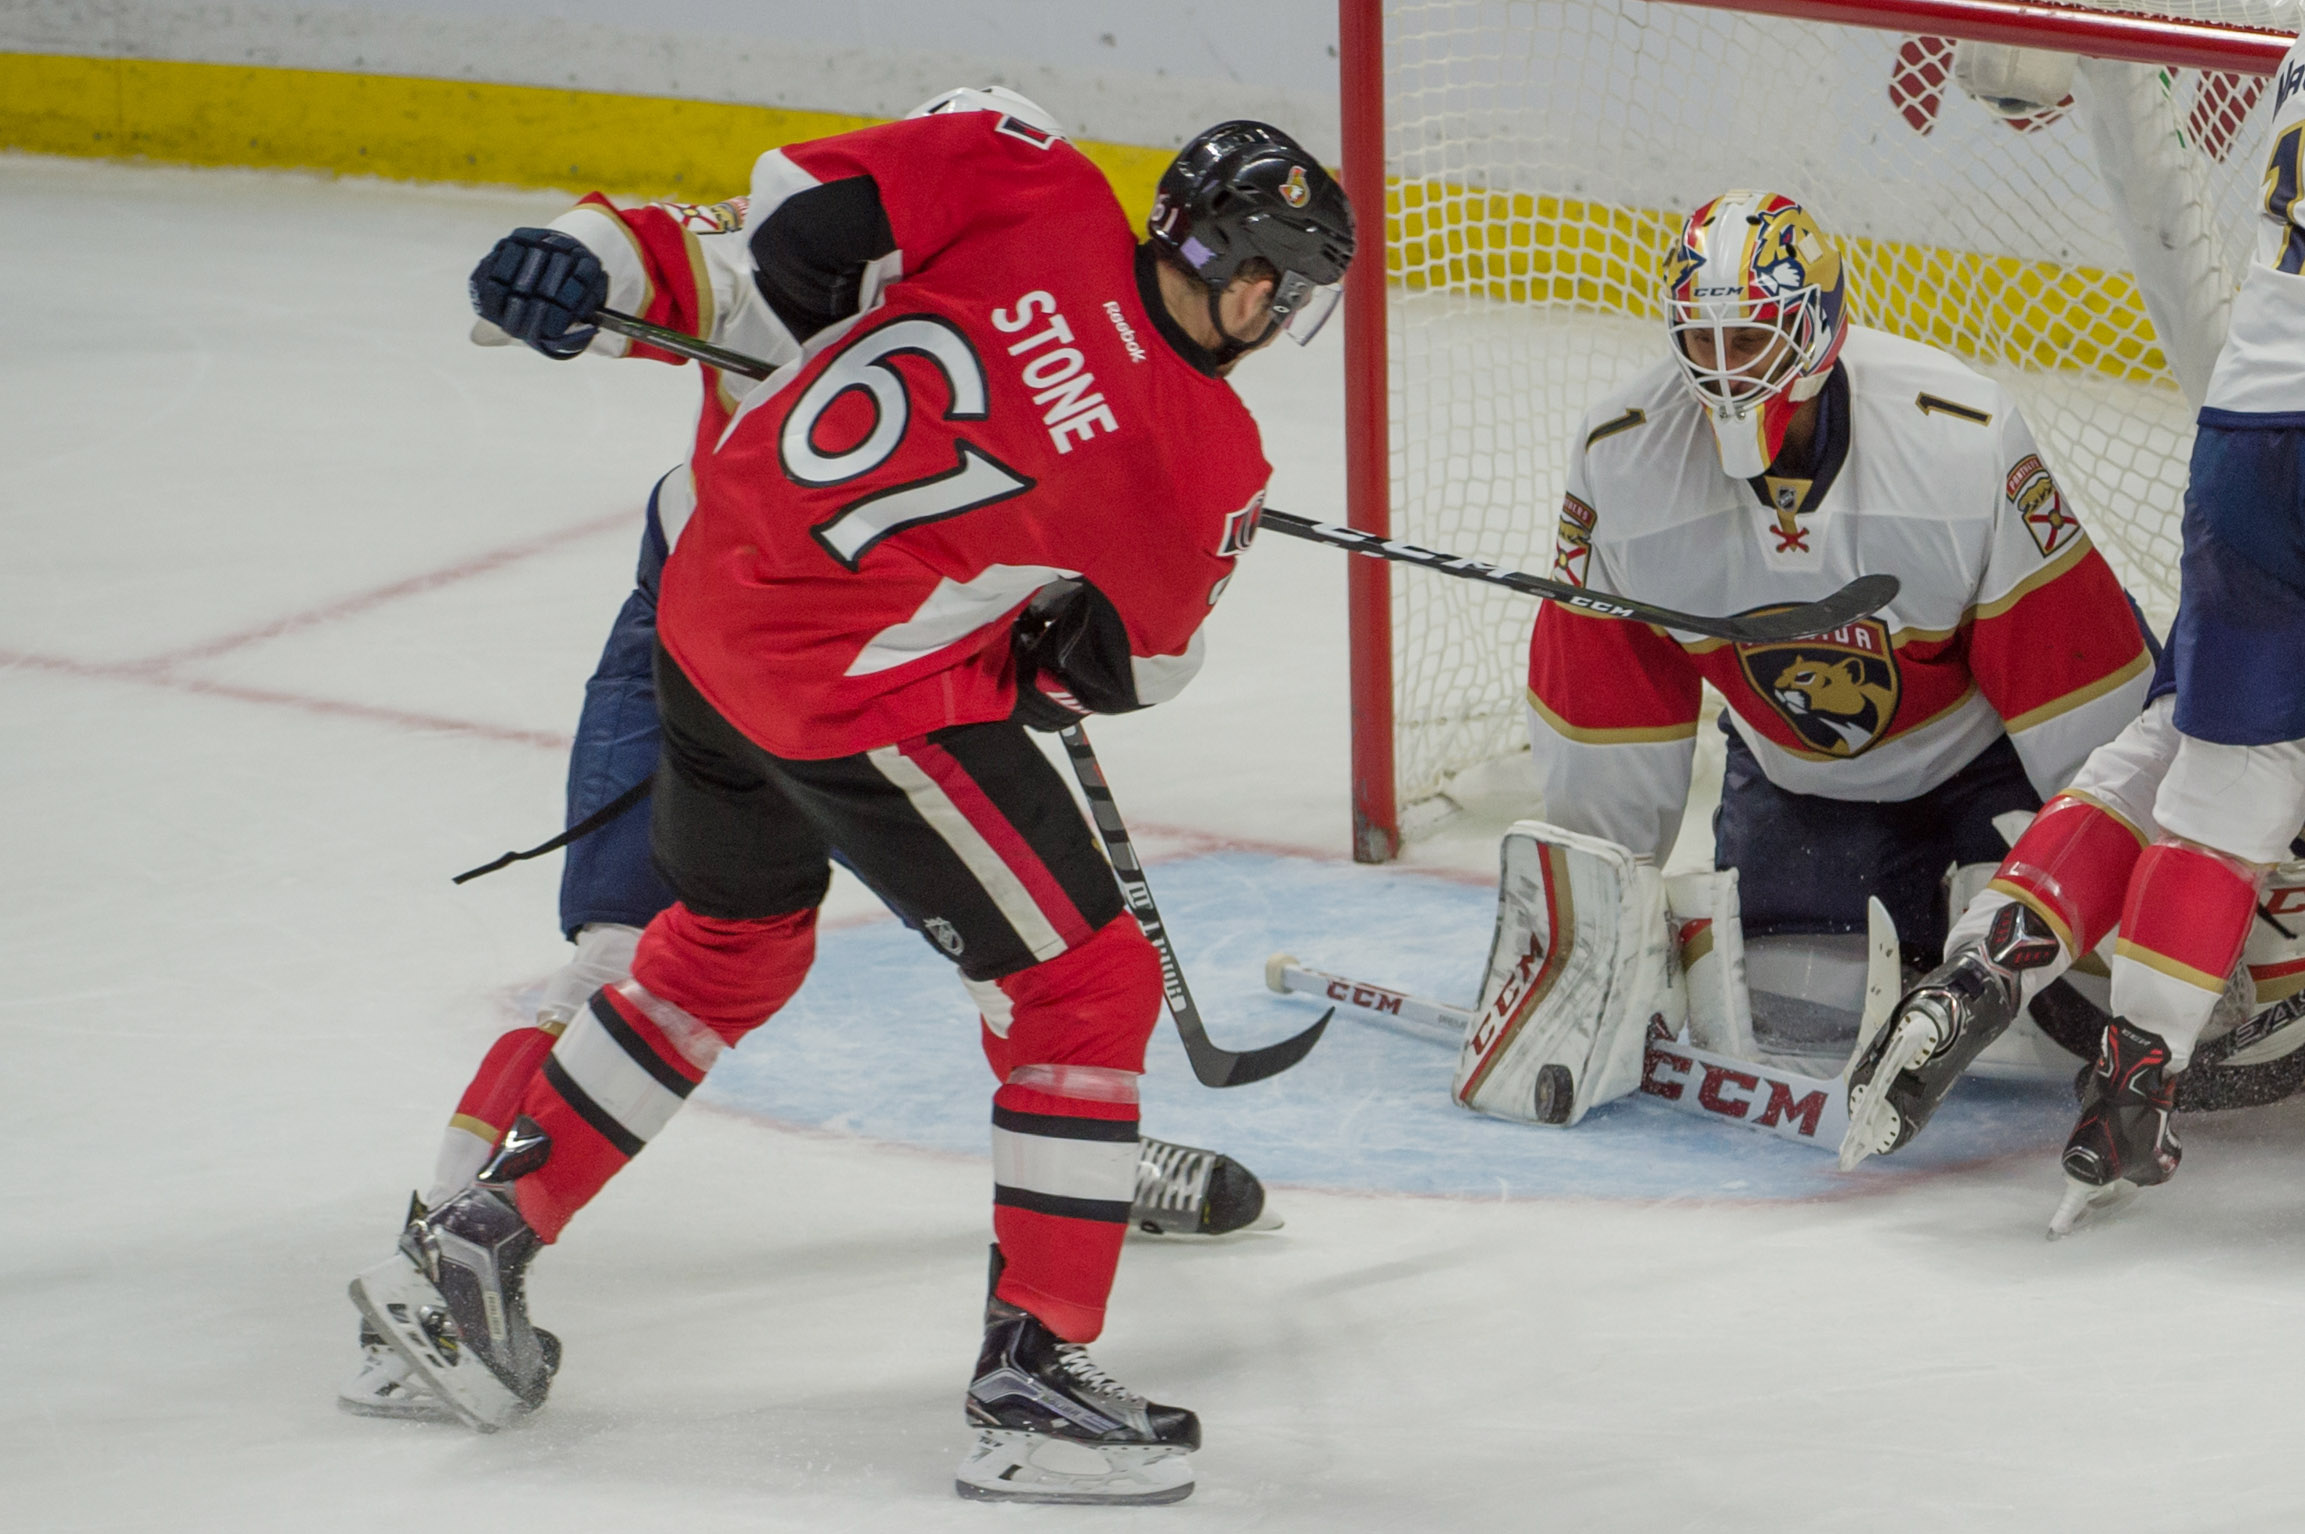 9691529-nhl-florida-panthers-at-ottawa-senators